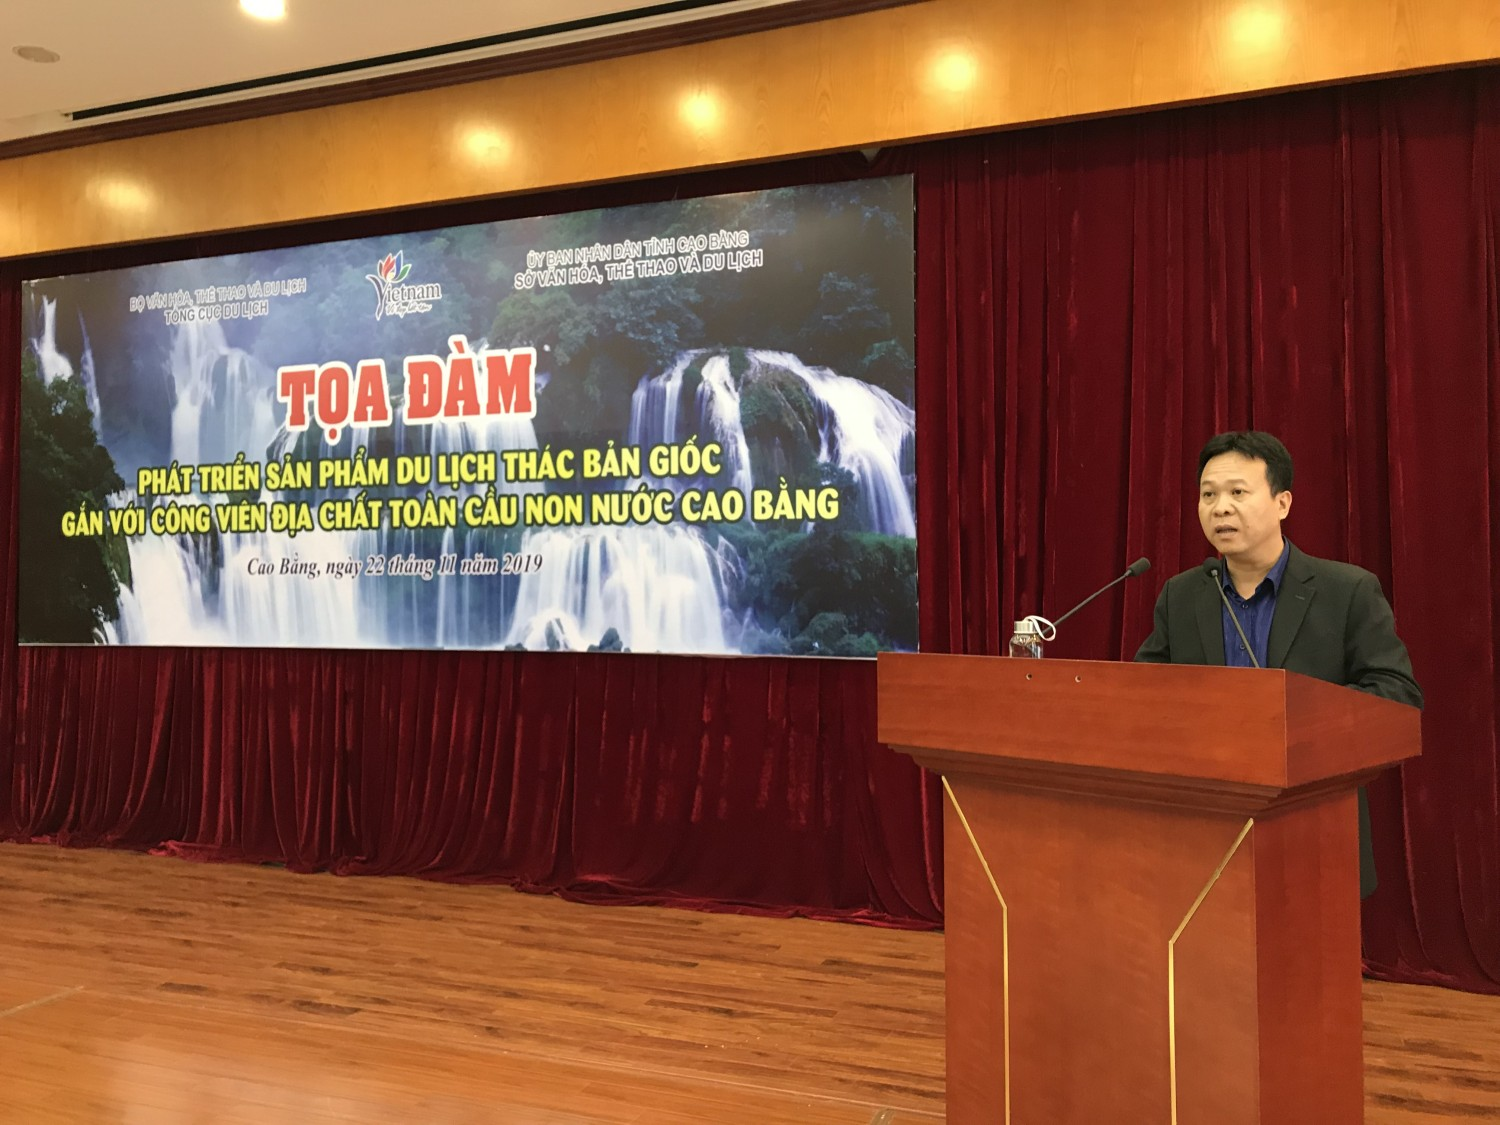 Mr. Nguyen Dao Dung, Deputy Director of General Department of Tourism made a remark at the Conference.